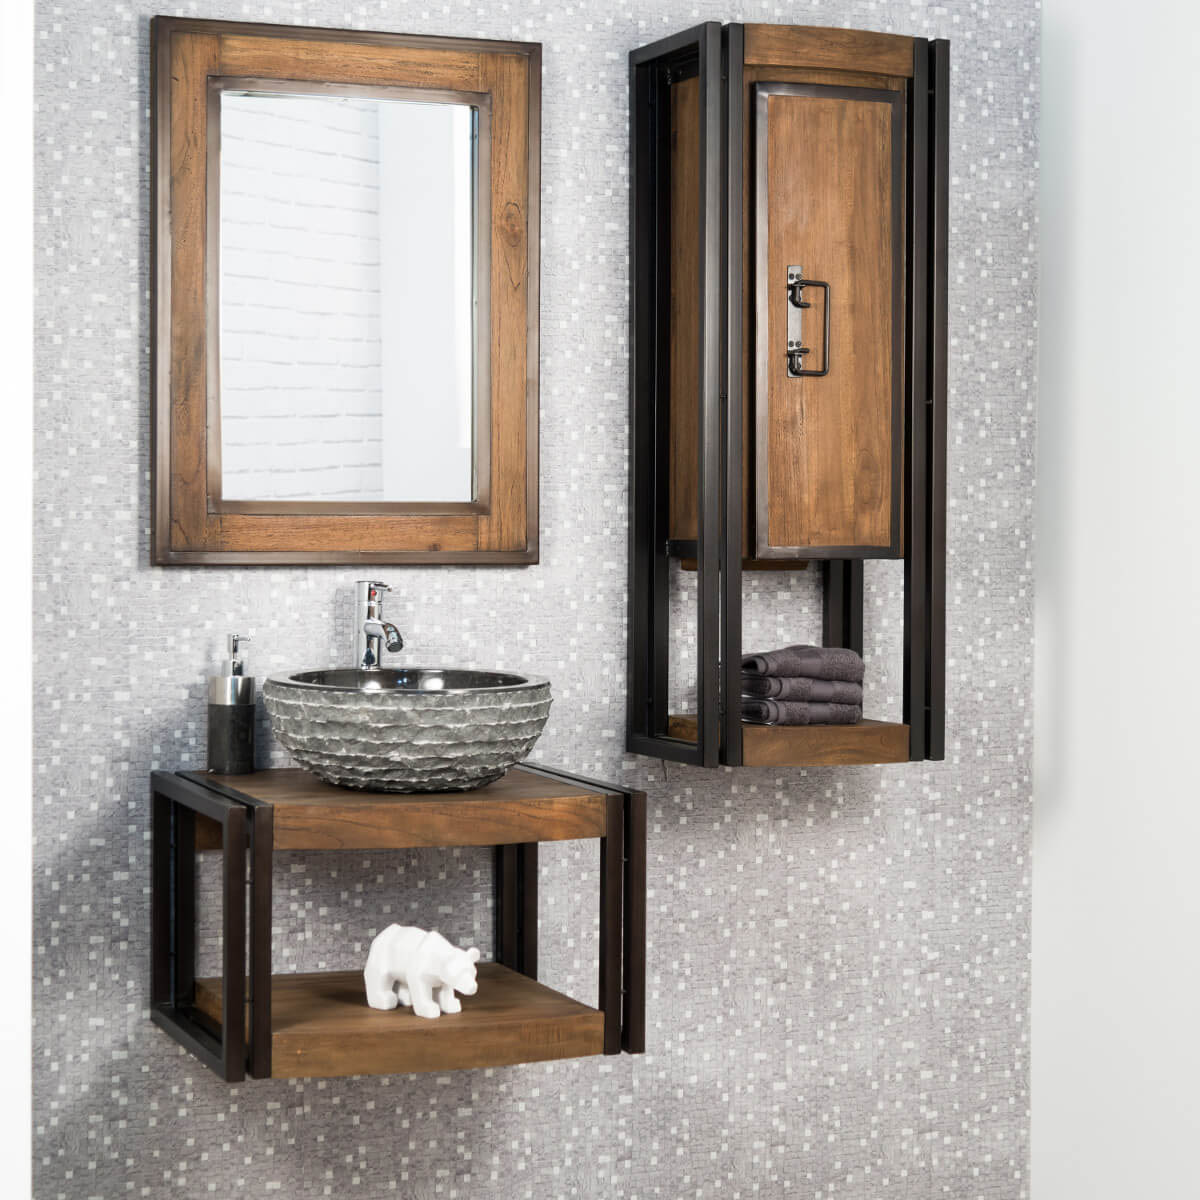 miroir articule salle de bain maison design. Black Bedroom Furniture Sets. Home Design Ideas